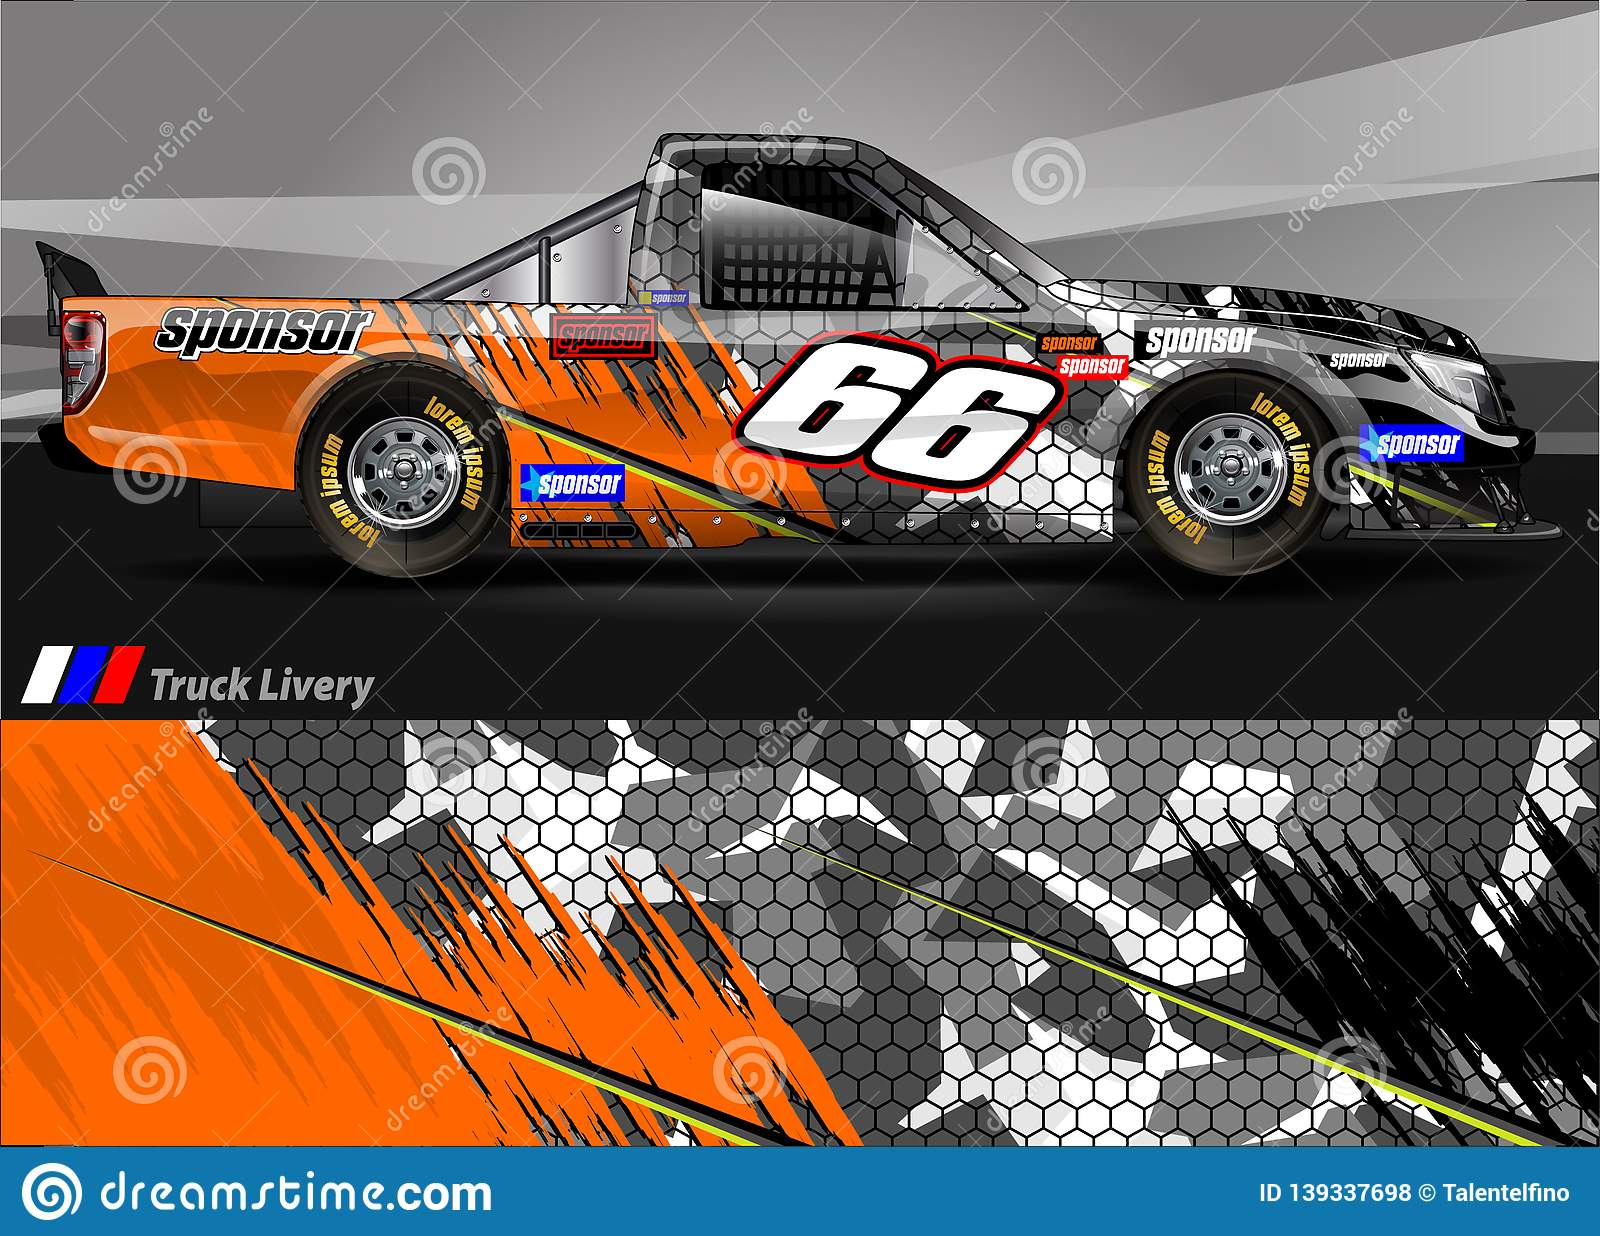 Race Truck Livery Graphic Vector Abstract Grunge Background Design For Vehicle Vinyl Wrap And Car Branding Stock Vector Illustration Of Identity Signboard 139337698